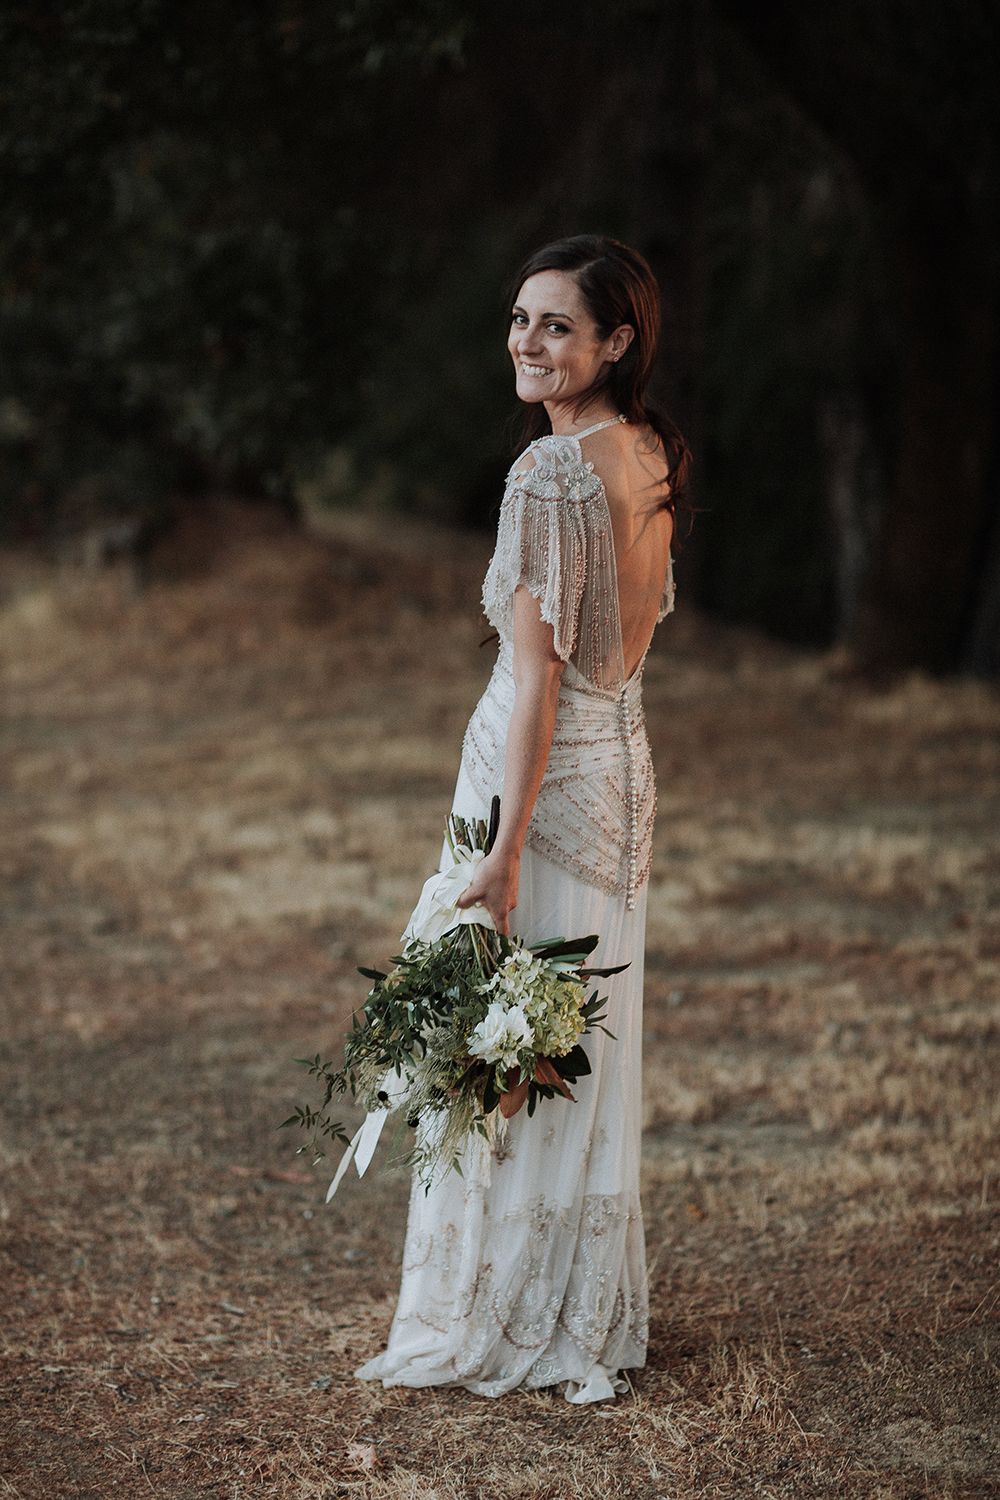 Categories: Weddings-Real Wedding: Lauren & Andy - Photography by Gretchen Gause